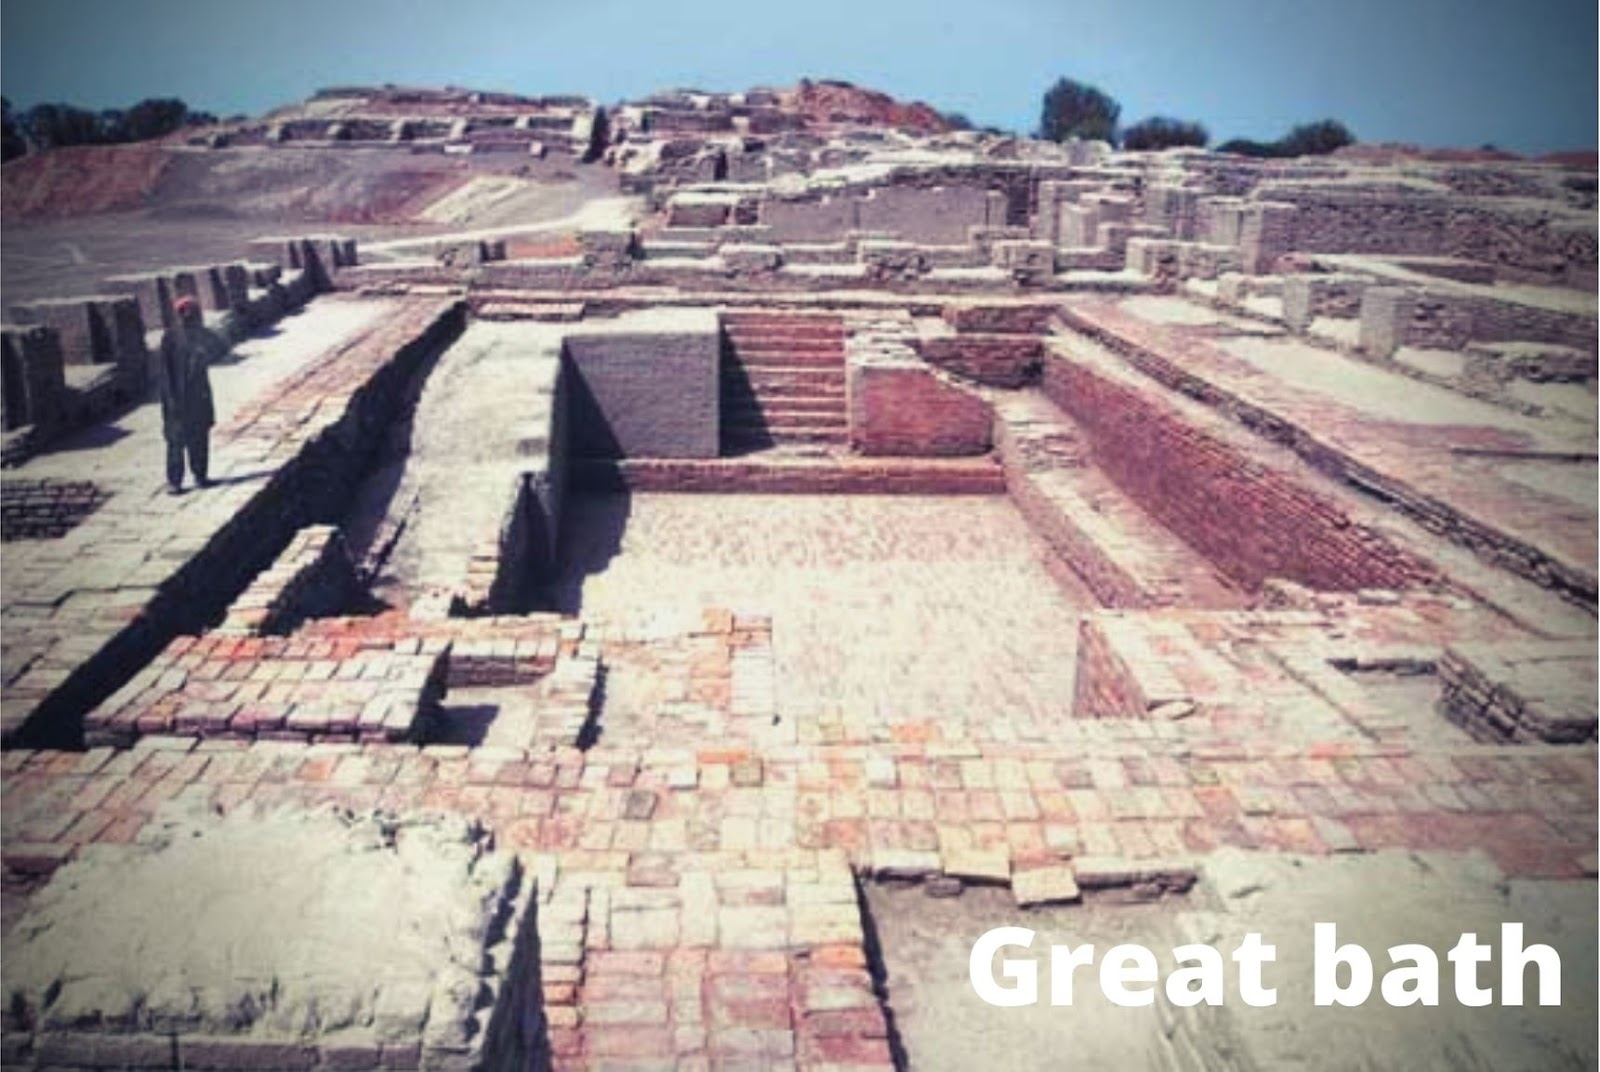 In The Earliest Cities: Great bath